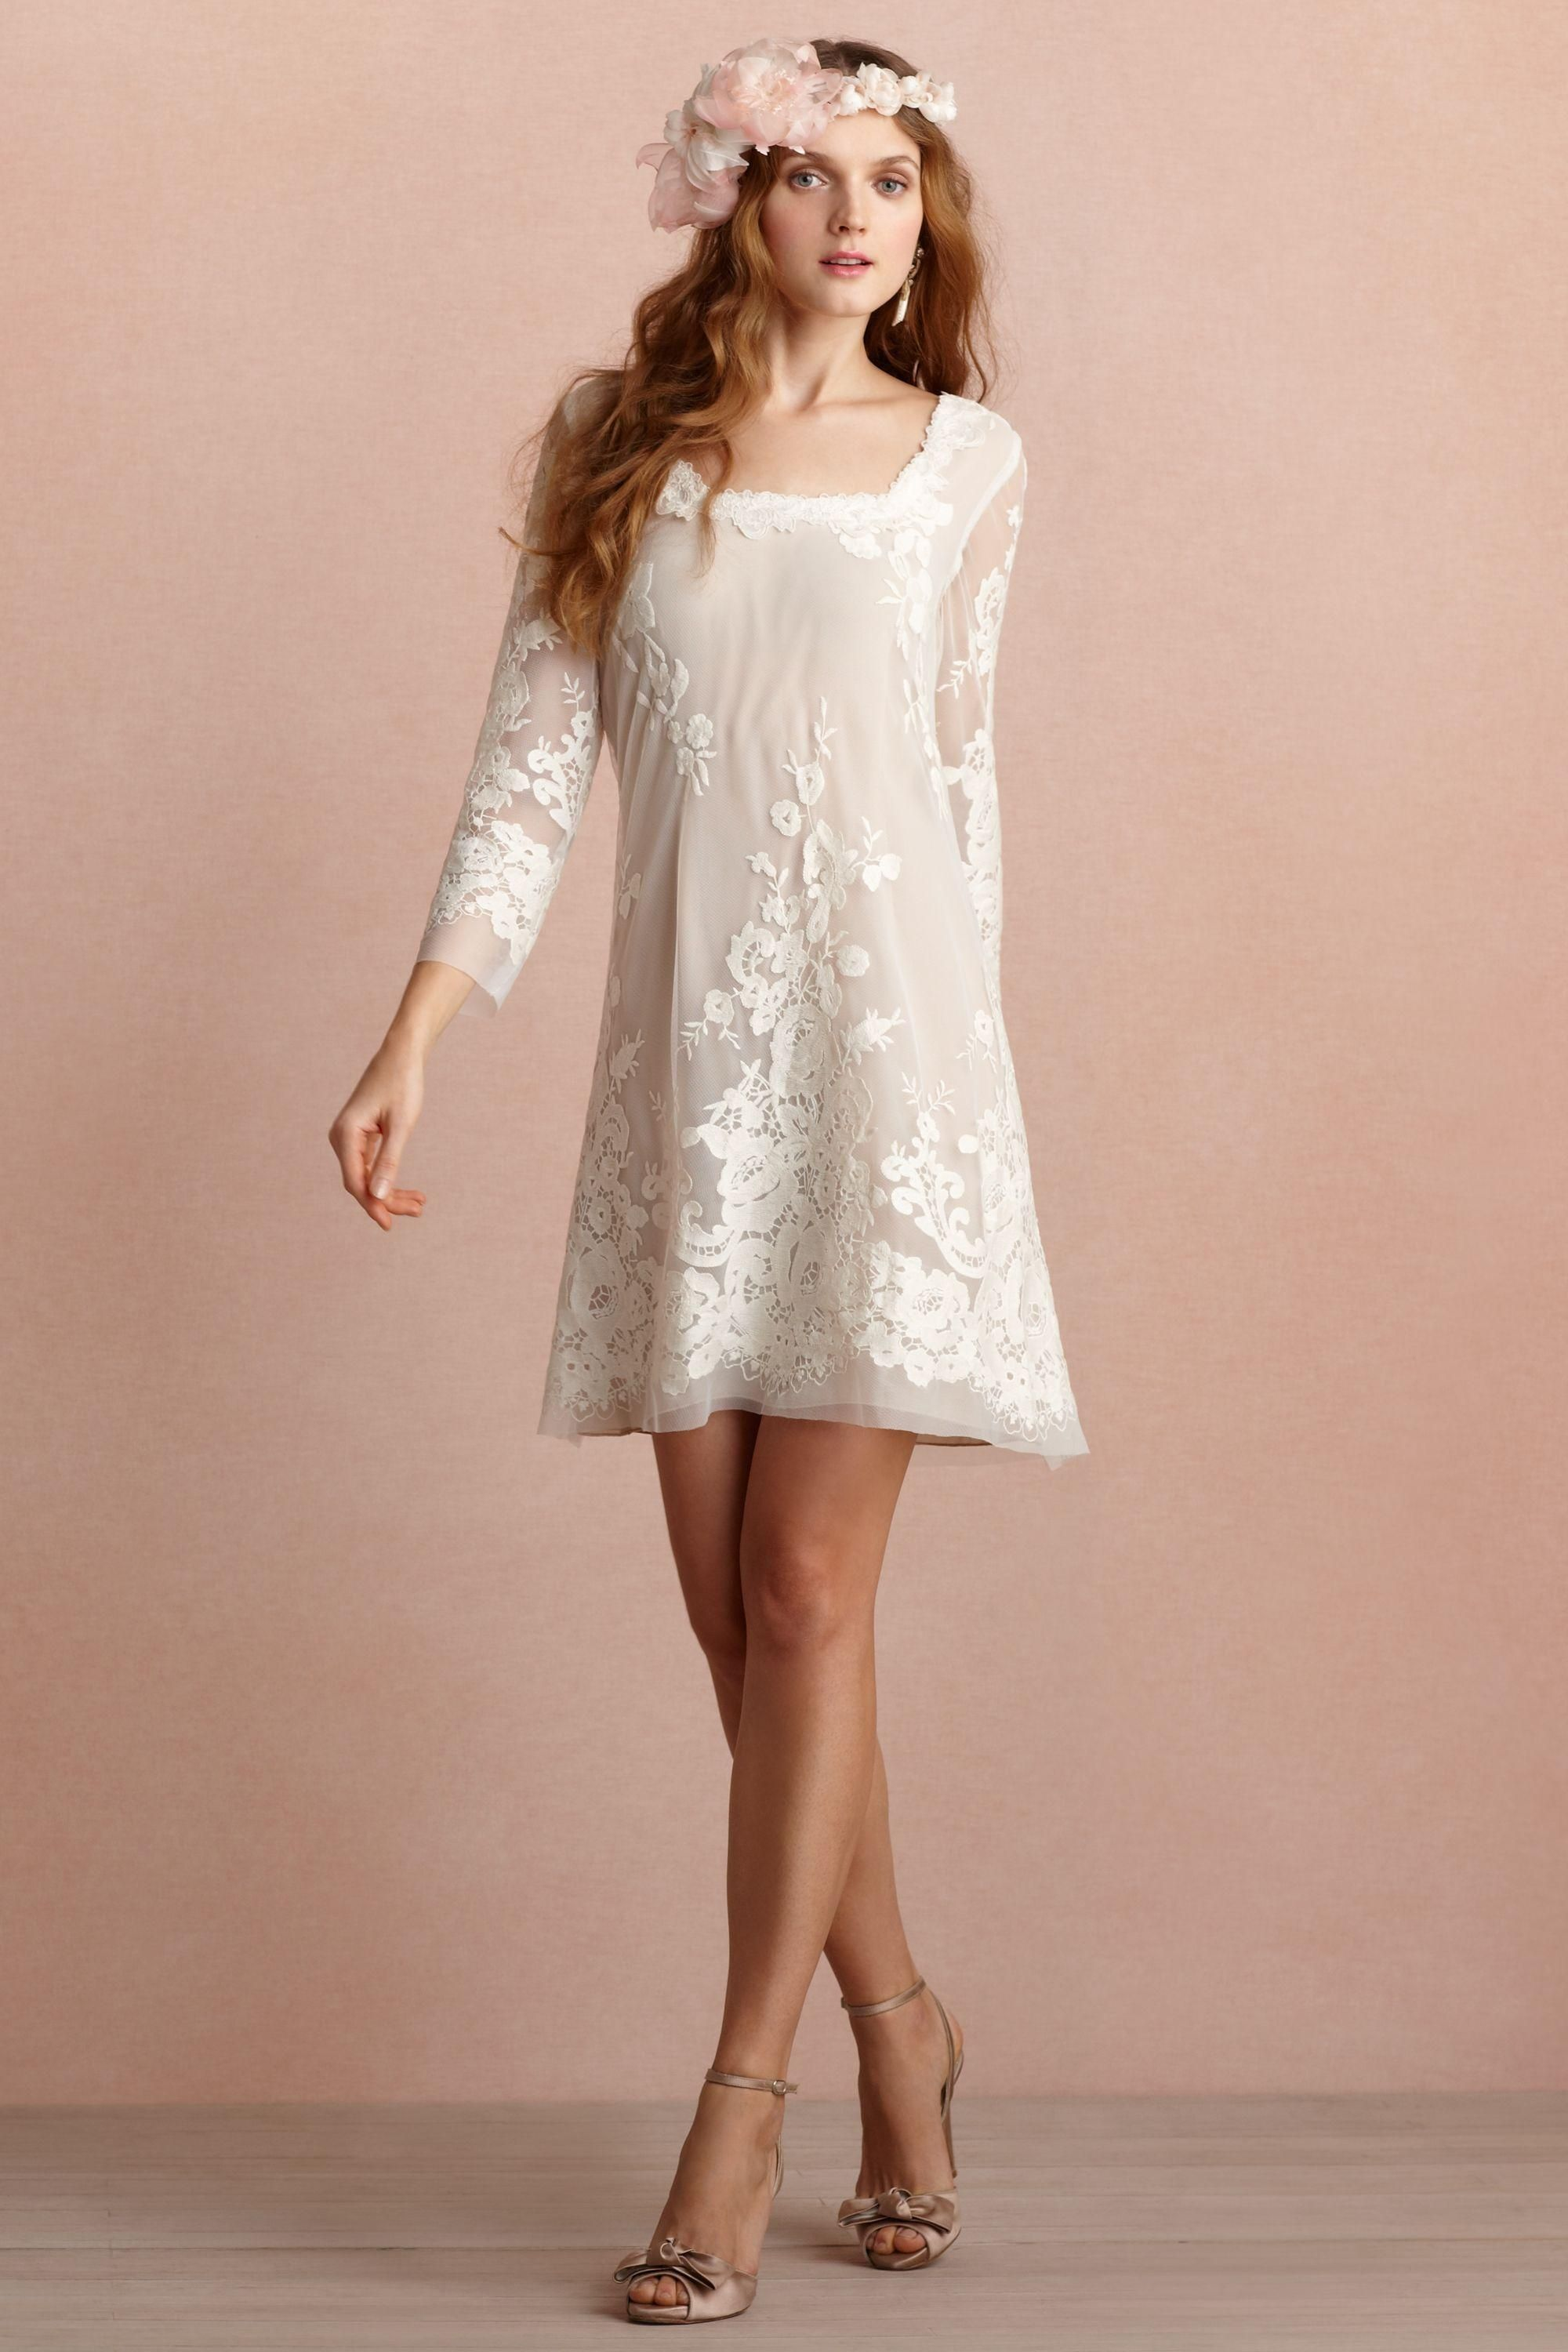 Pin by maca oromí on vestidos pinterest short lace wedding dress